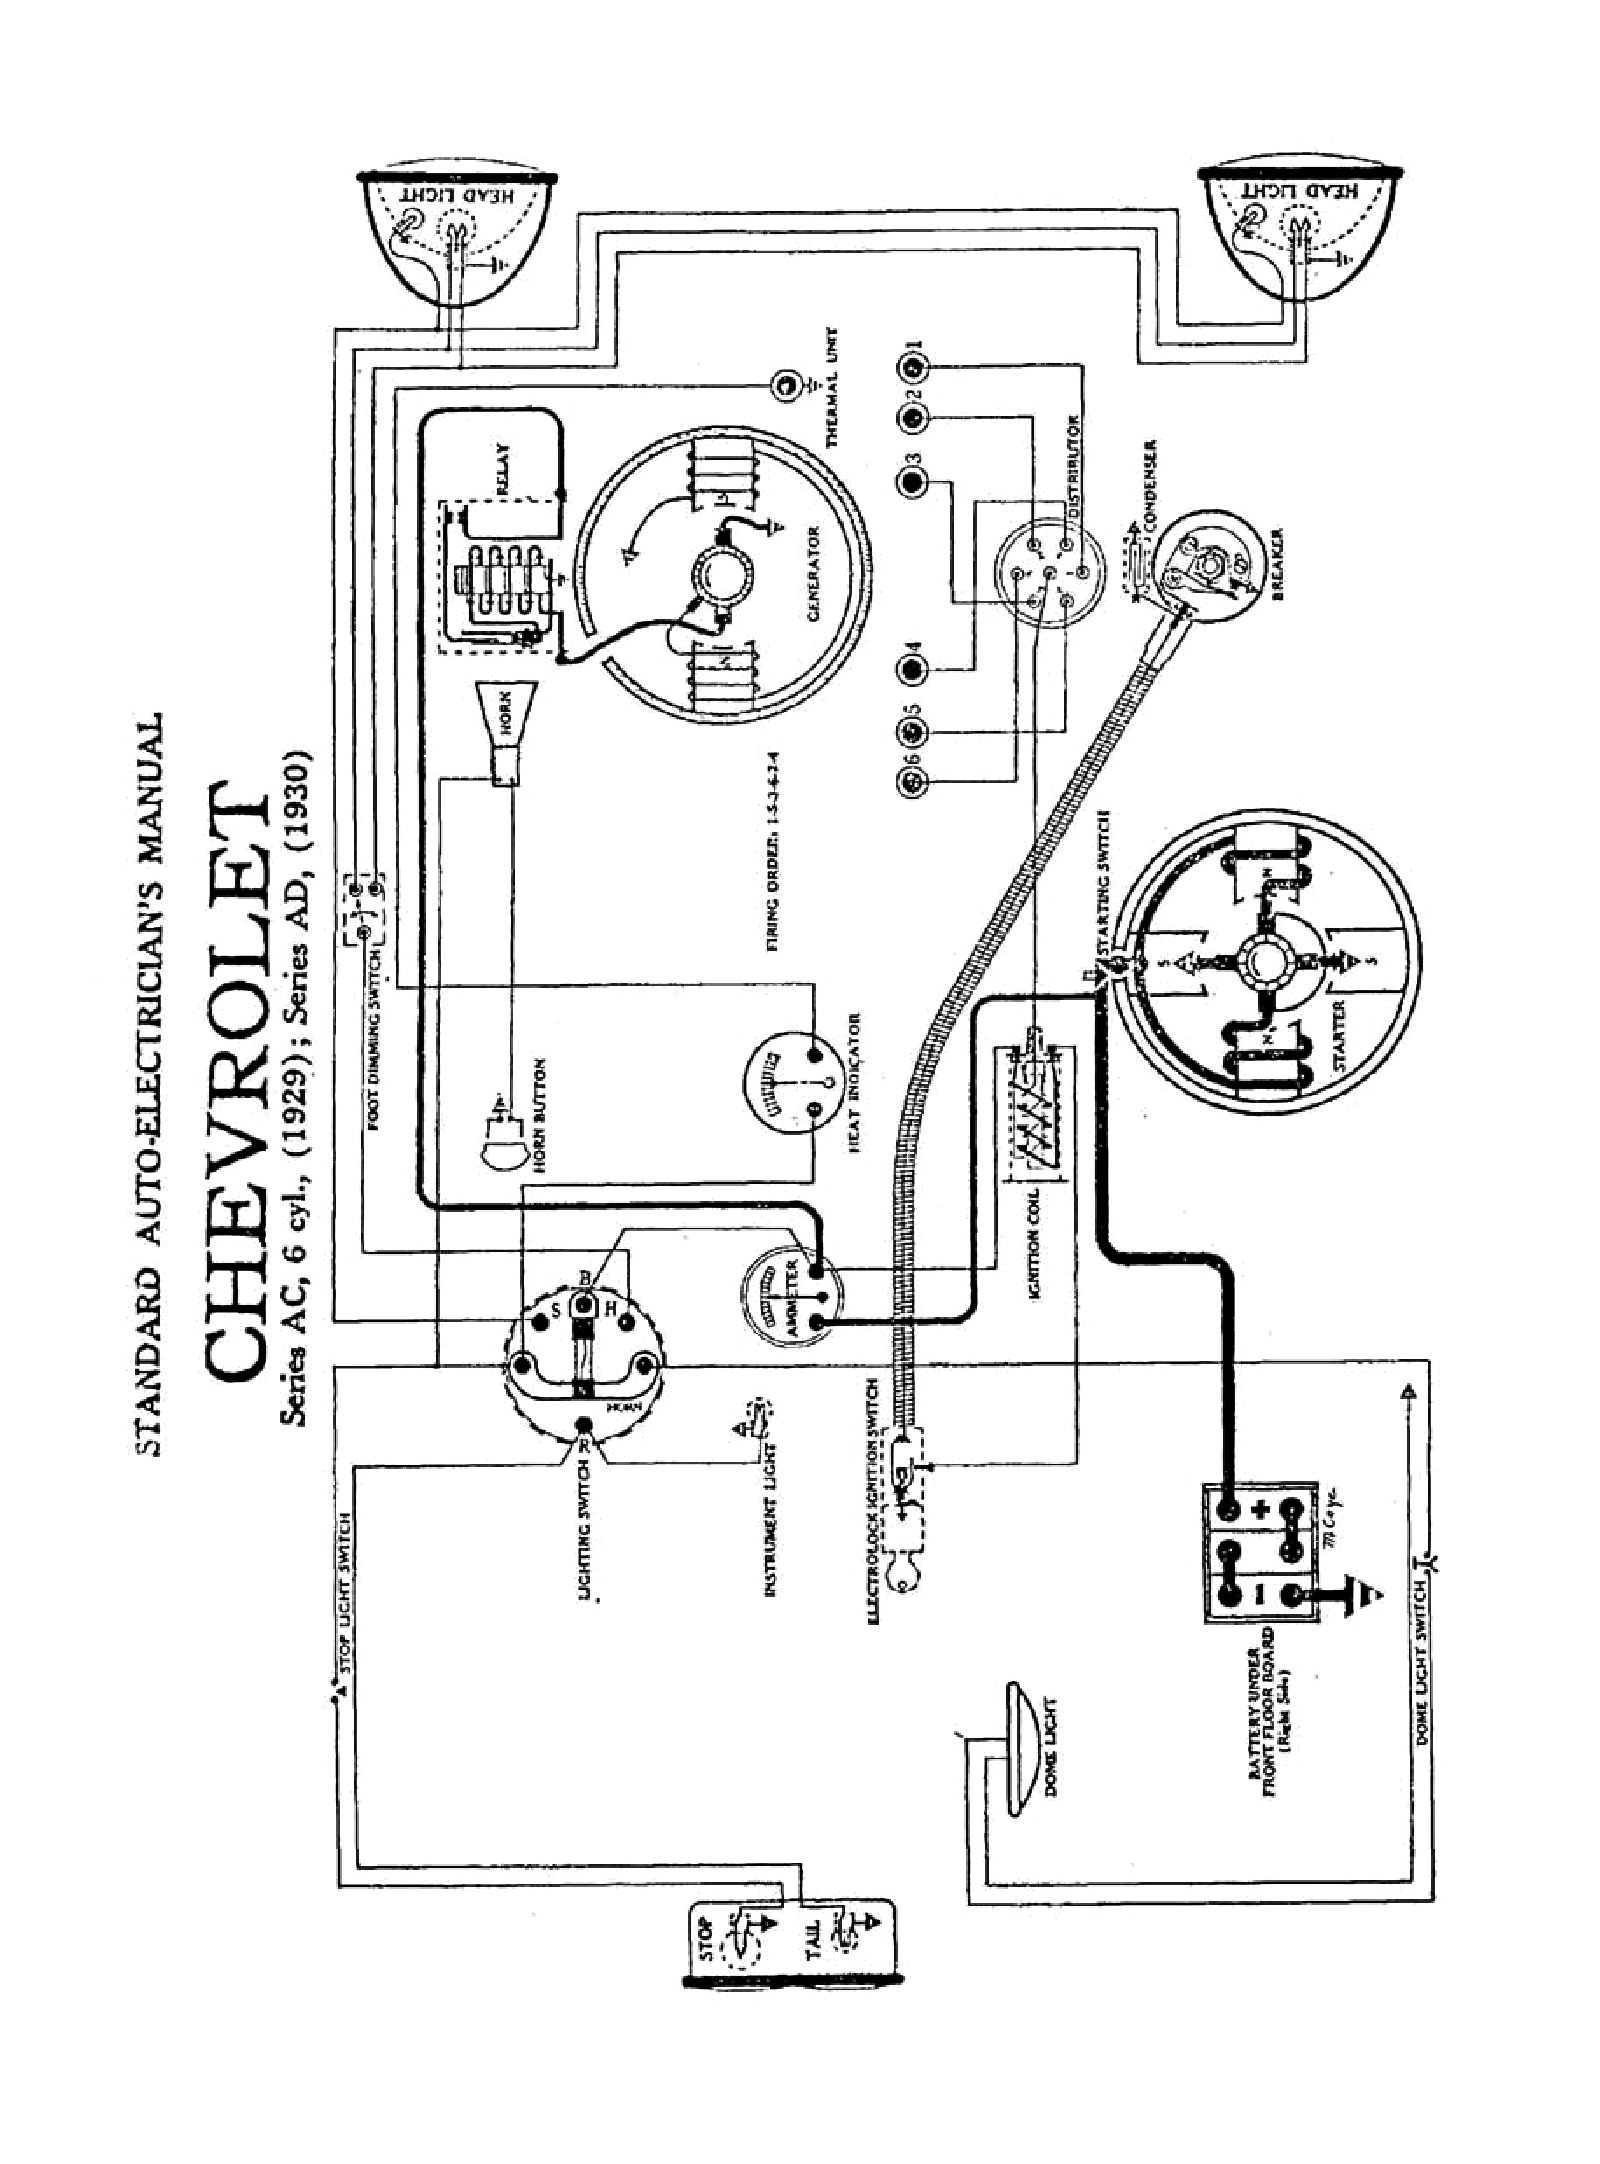 hight resolution of model wiring diagram schematic wiring diagrams rh 50 koch foerderbandtrommeln de aprilaire 700 wiring aprilaire 600